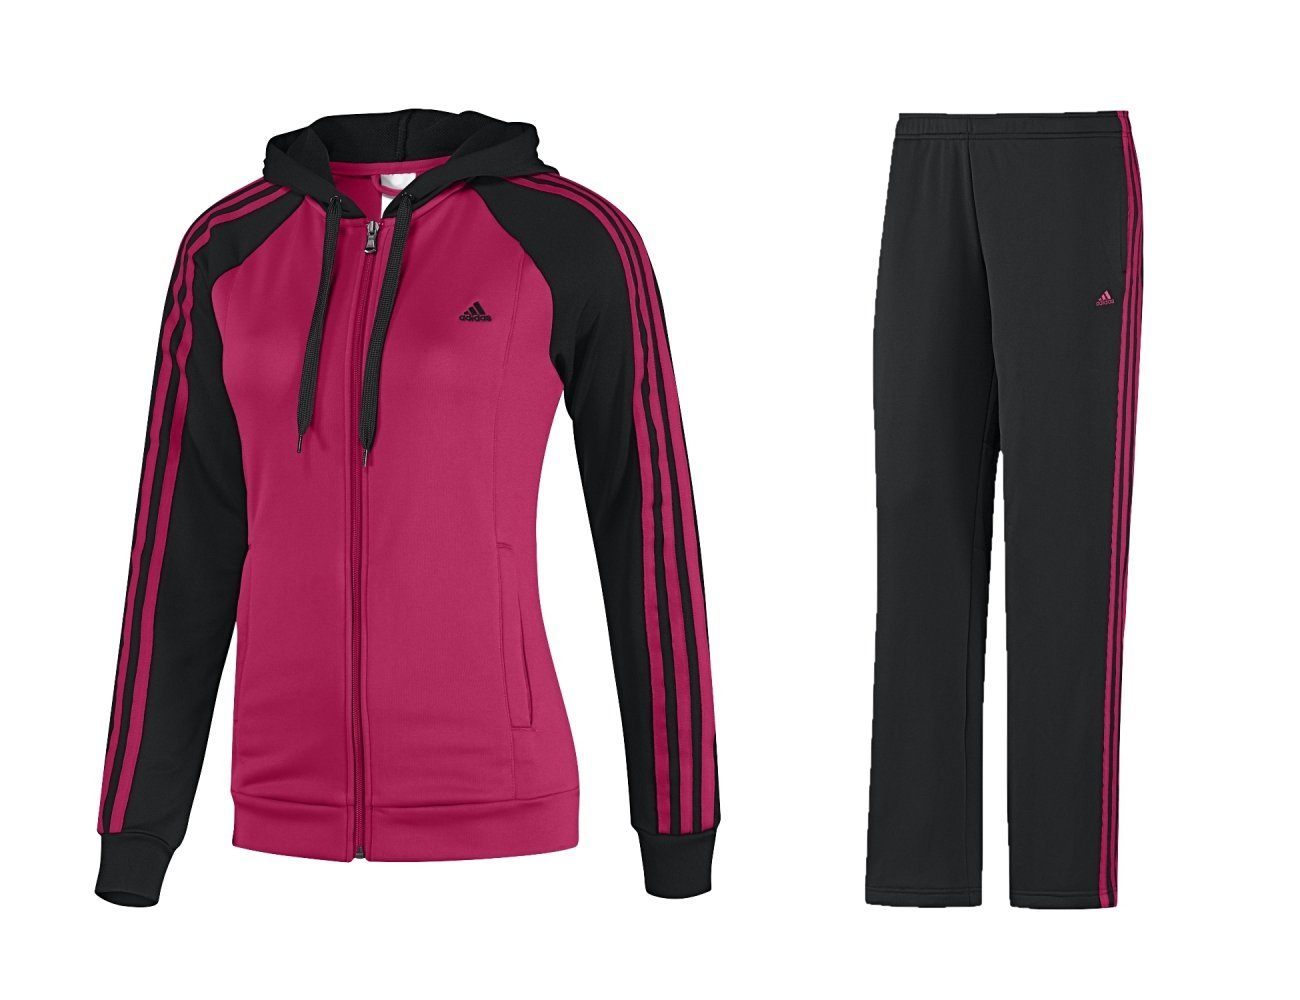 adidas damen trainingsanzug 3s young knit suit women. Black Bedroom Furniture Sets. Home Design Ideas